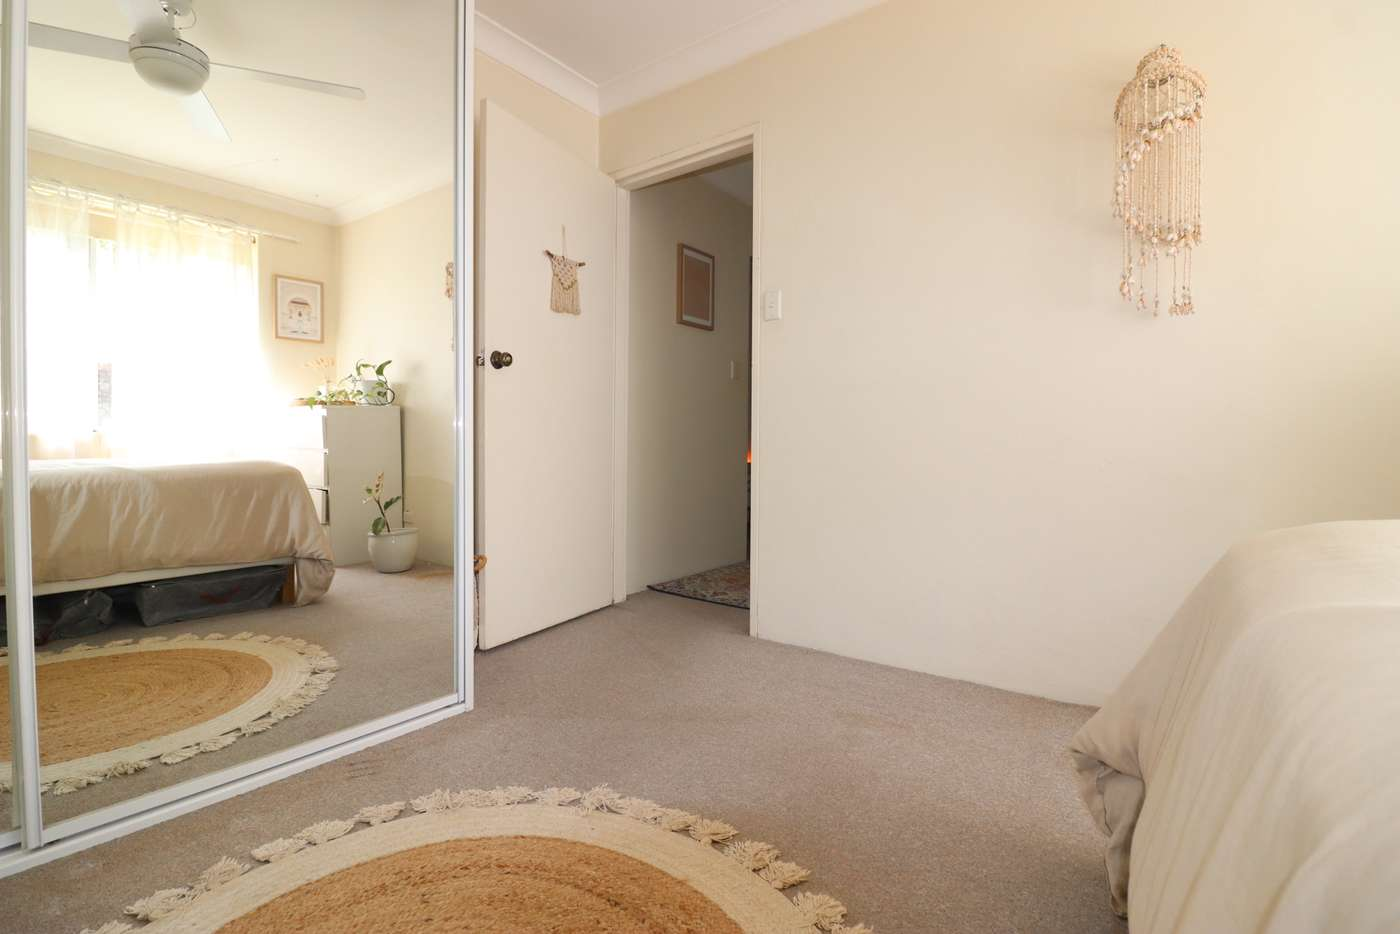 Sixth view of Homely unit listing, 2/9-13 Nerang Rd, Cronulla NSW 2230